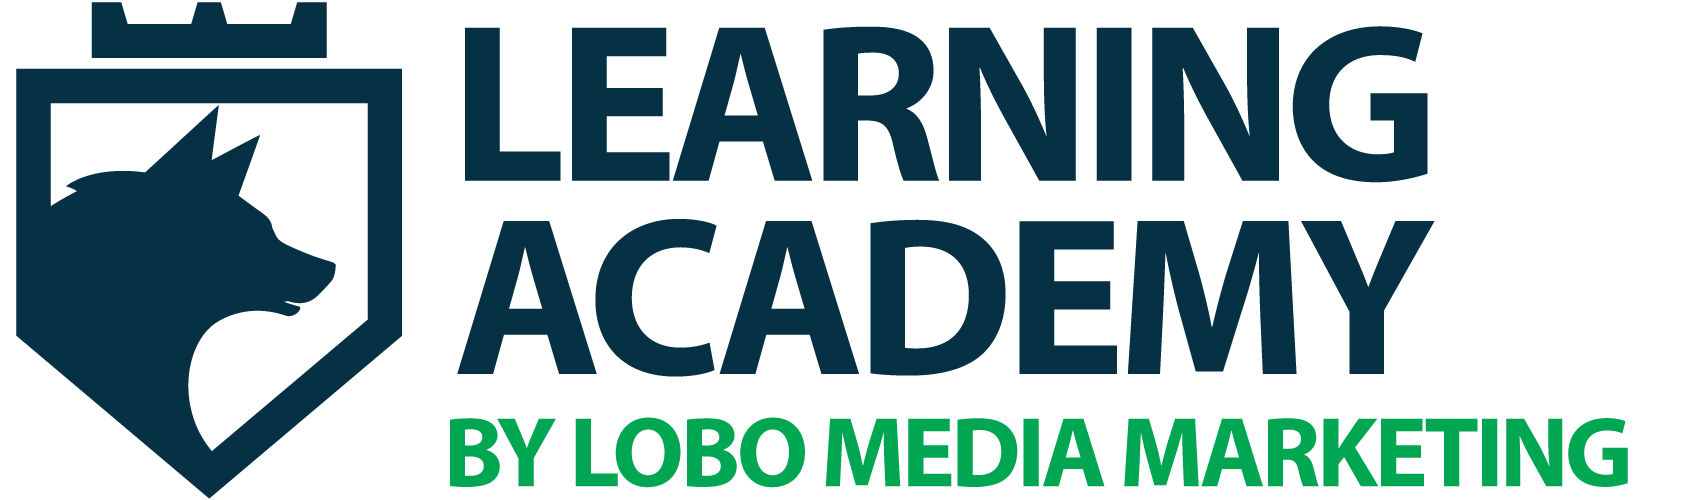 Lobo Media Marketing Logo